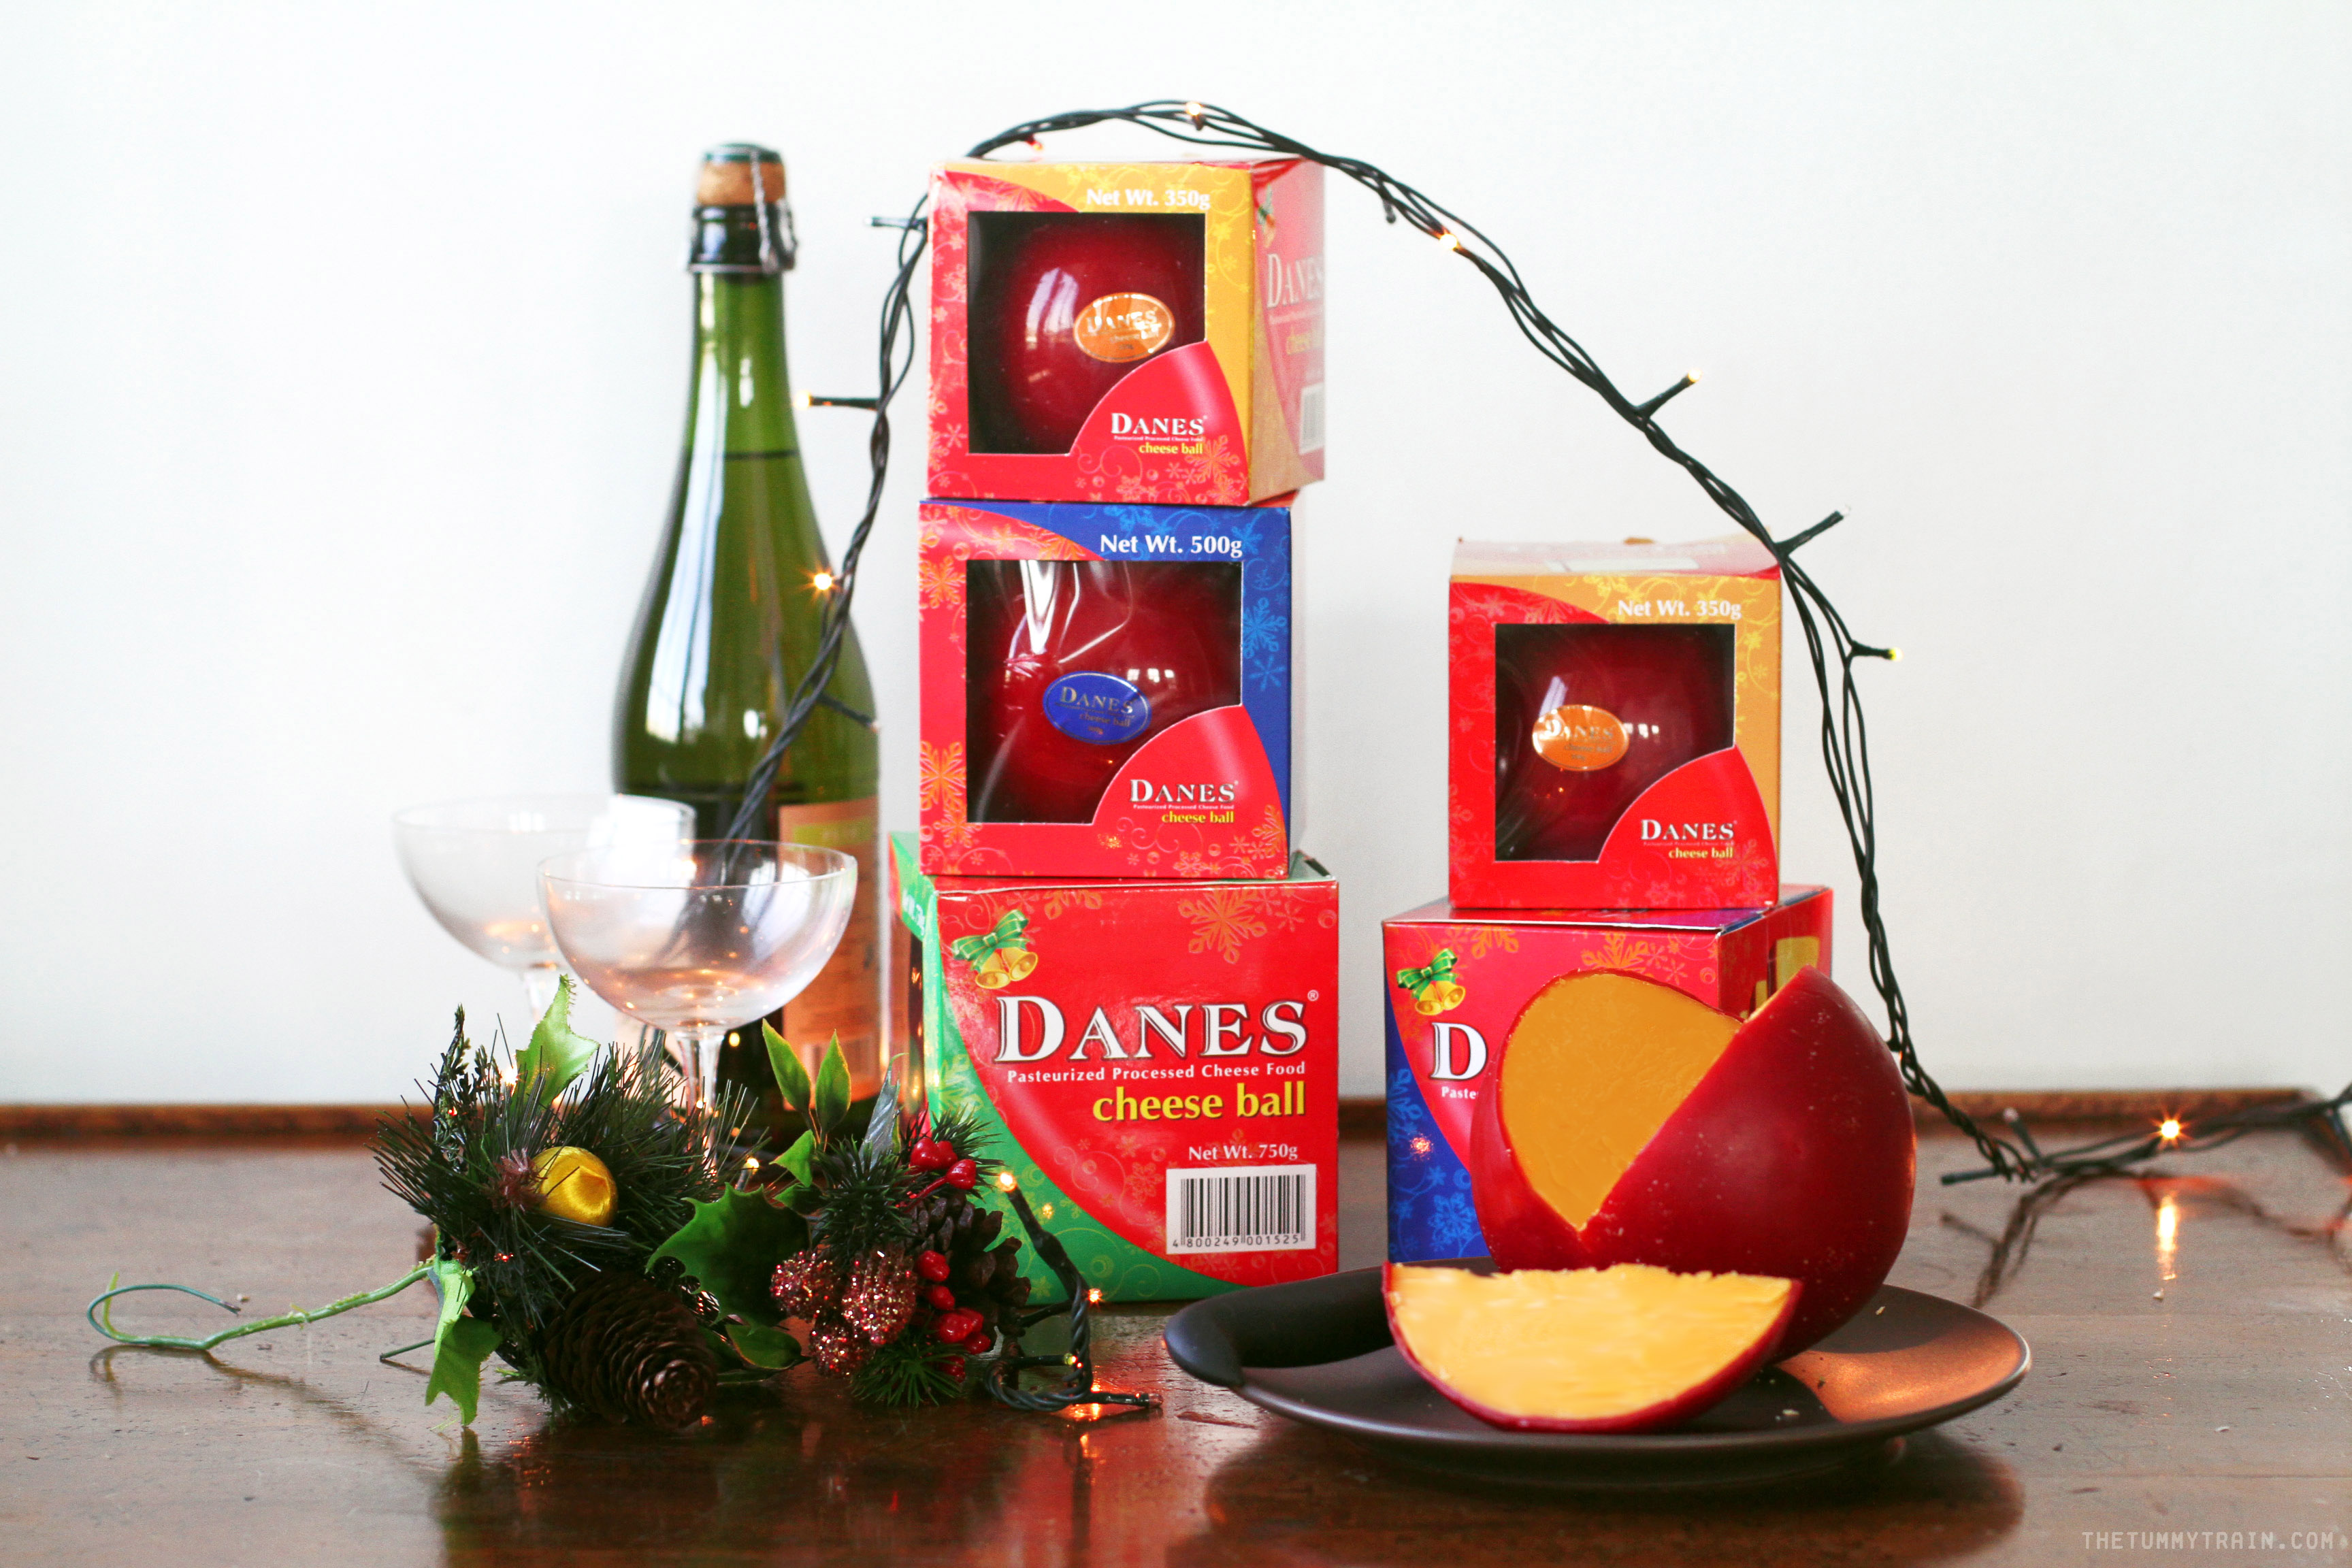 Danes Product Shot 6 - Have a sweet and savory Christmas with Danes Cheese Ball